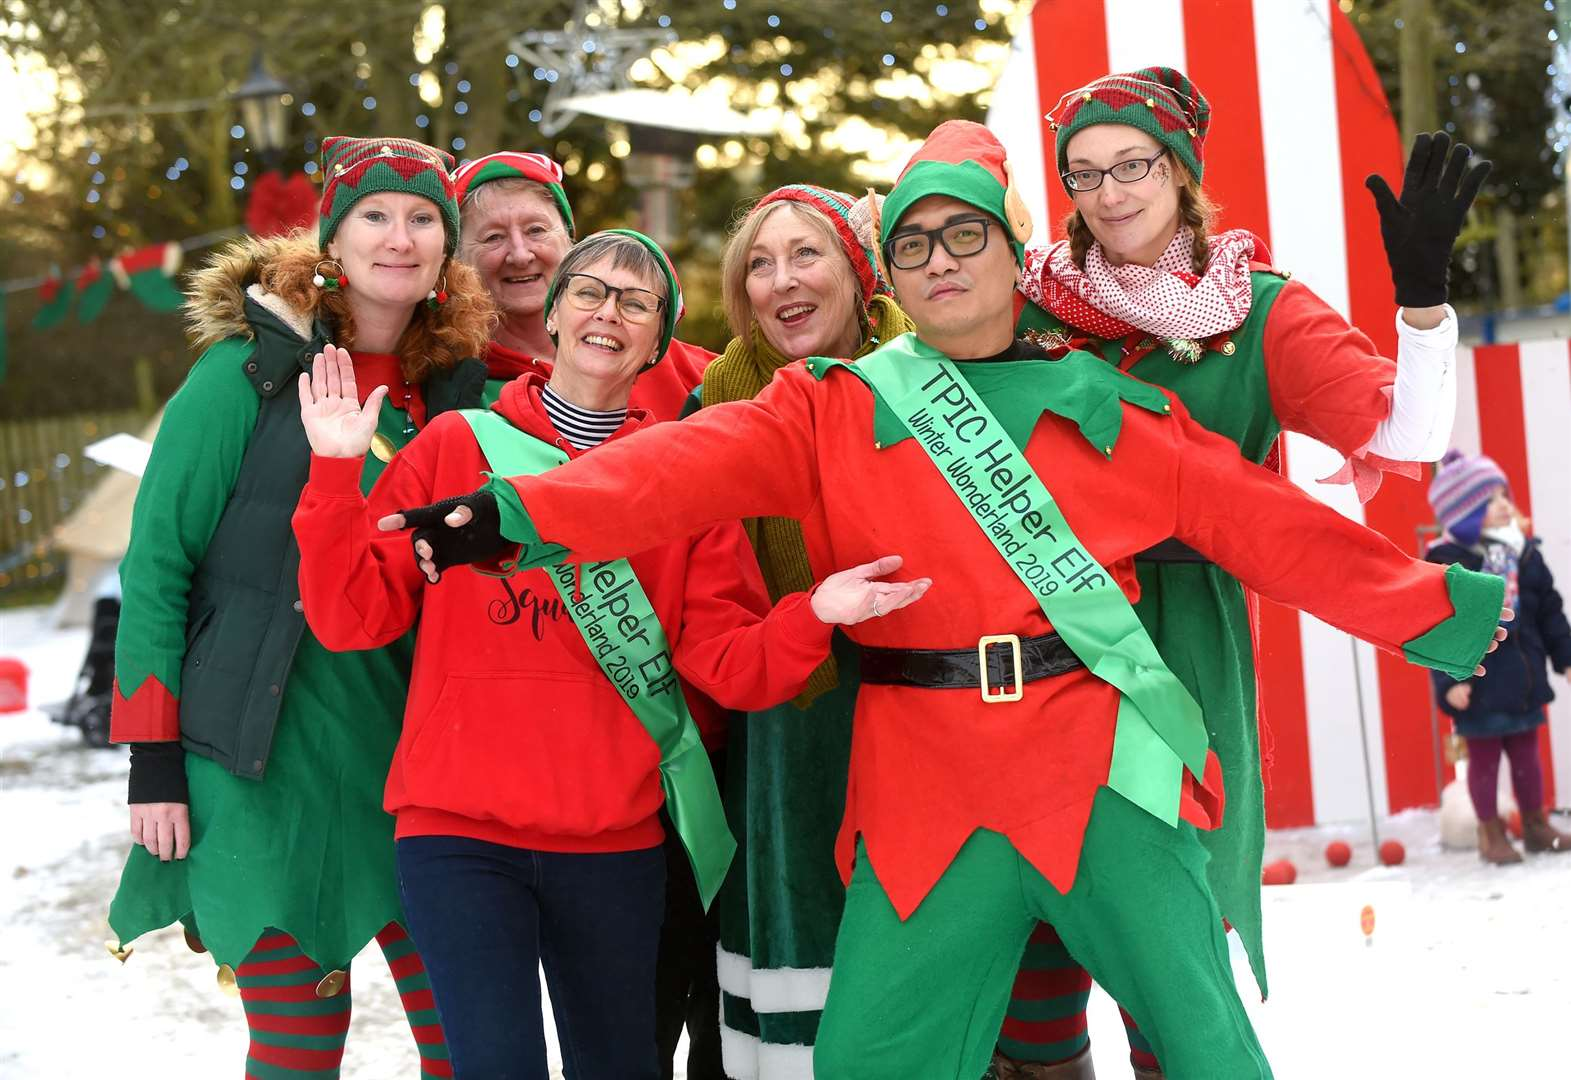 Annual three-day Winter Wonderland extravaganza arrives in Risby